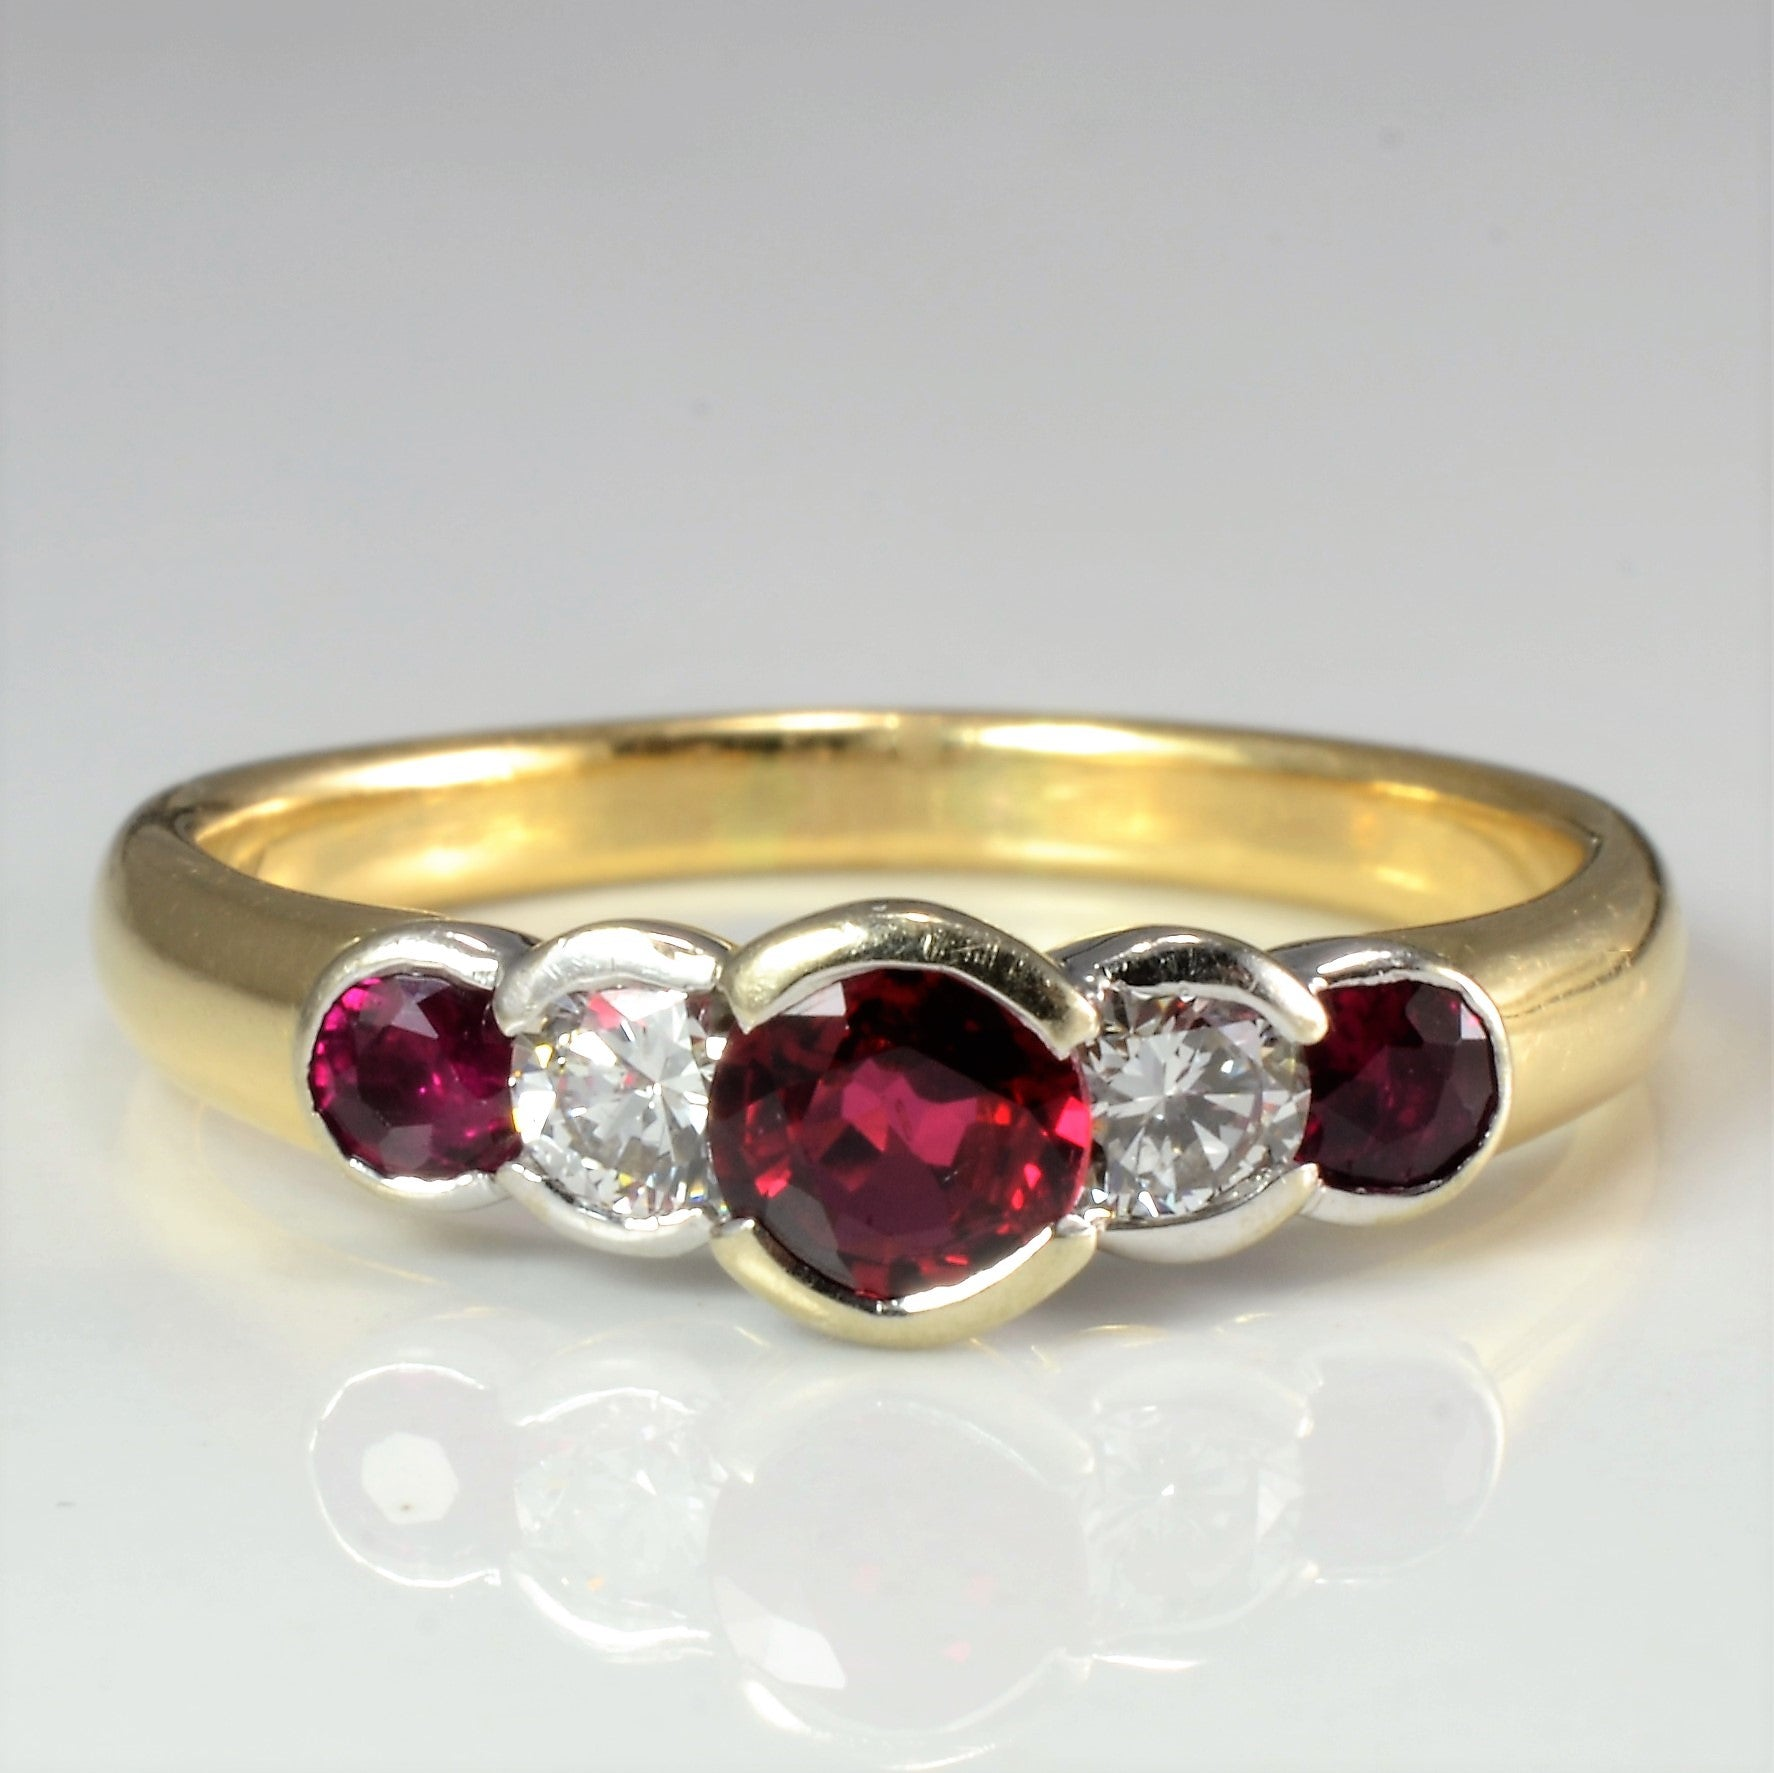 Bezel Set Ruby & Diamond Ring | 0.24 ctw, SZ 7.5 |